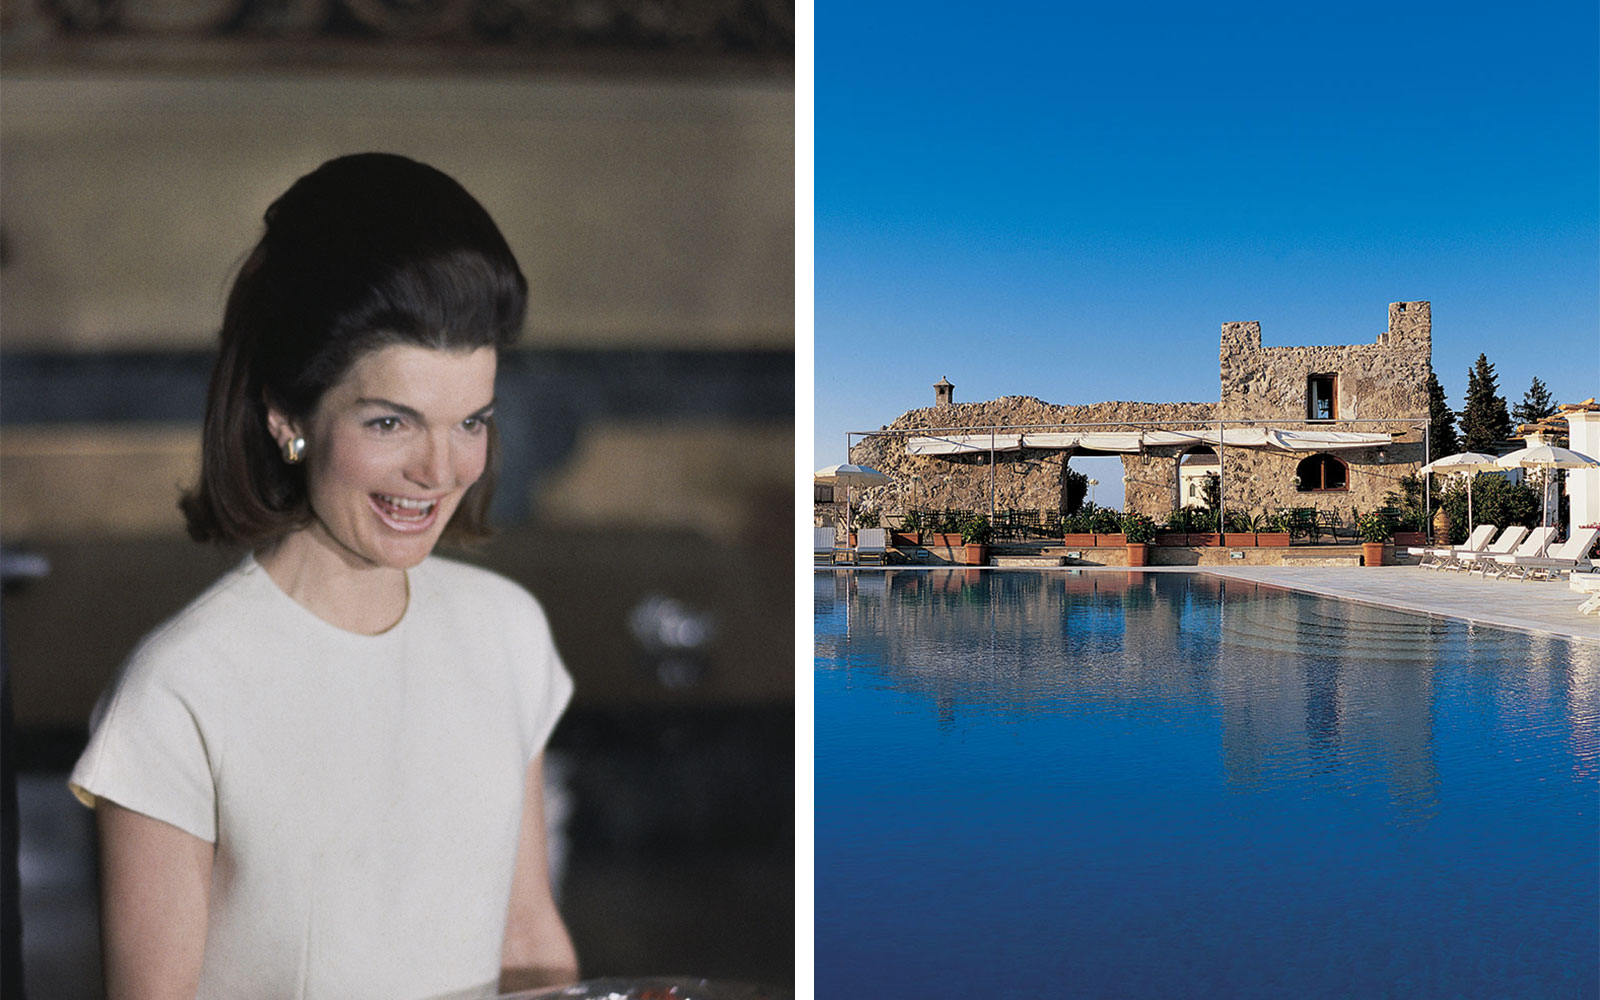 Hotels for Celebrity Sightings: Belmond Hotel Caruso, Ravello, Italy